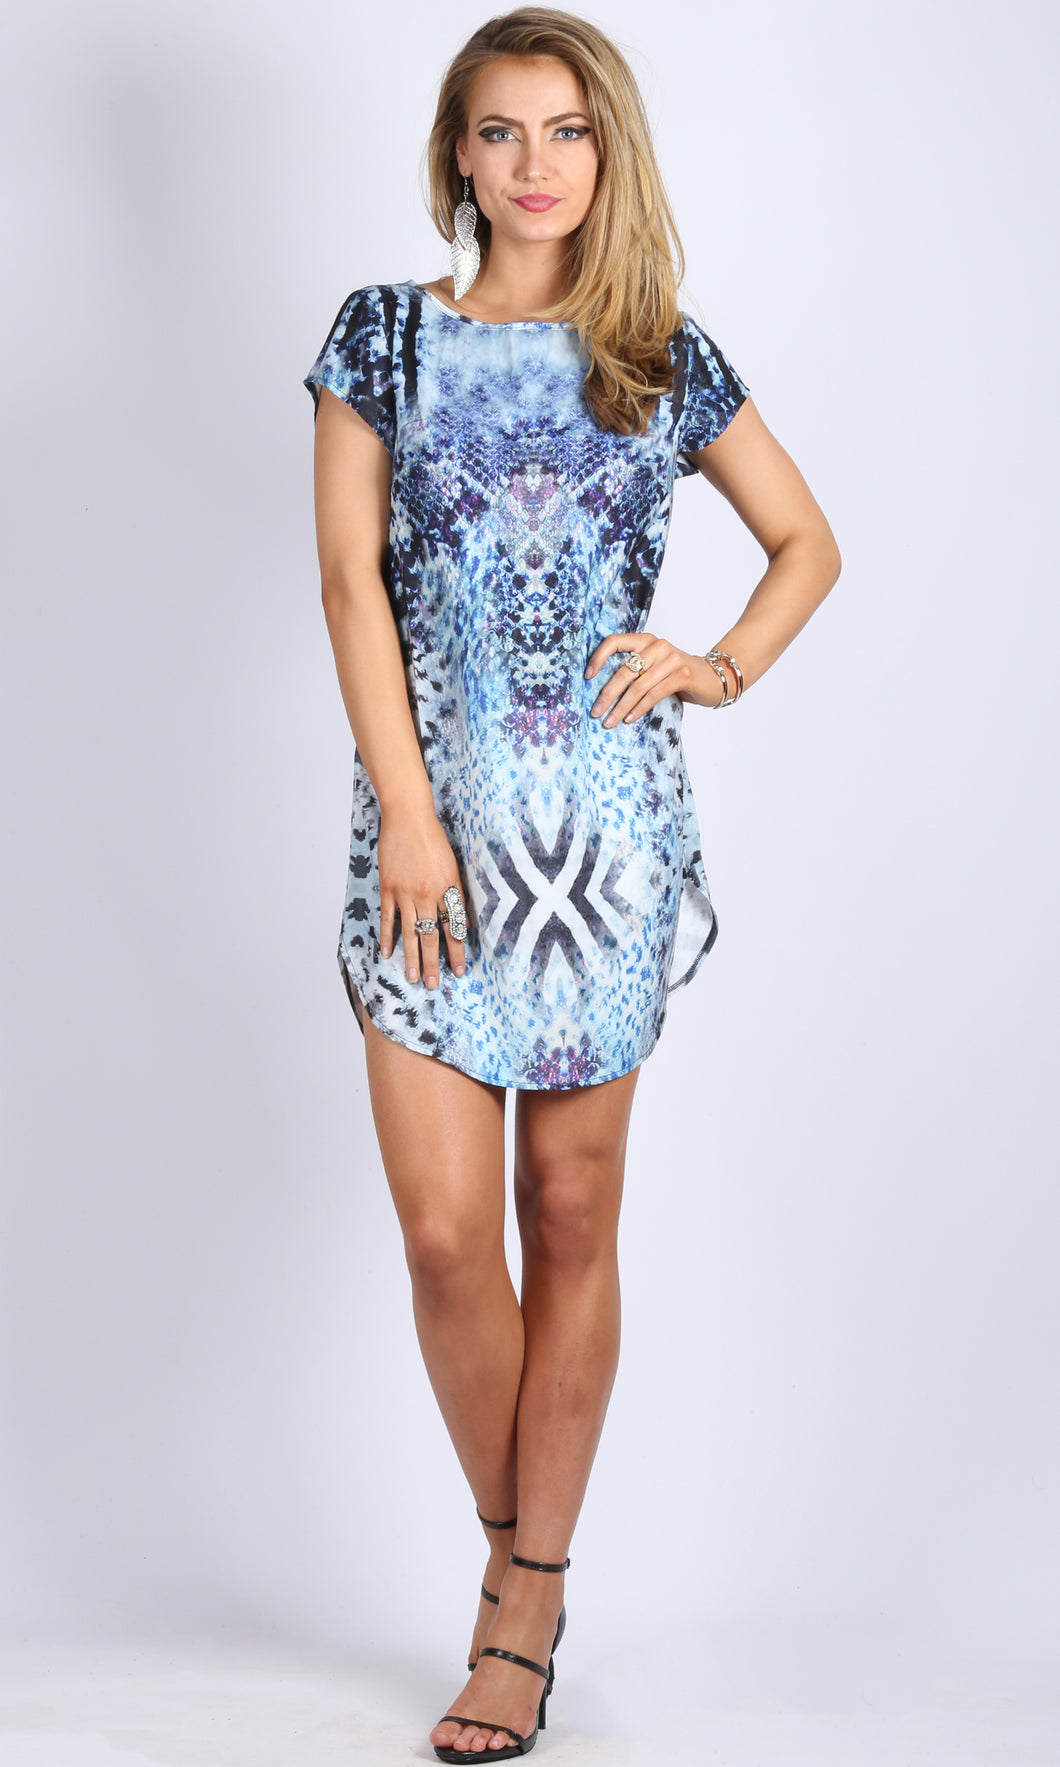 LV215-14SS Relaxed Printed Blue Mini Dress (Pack)